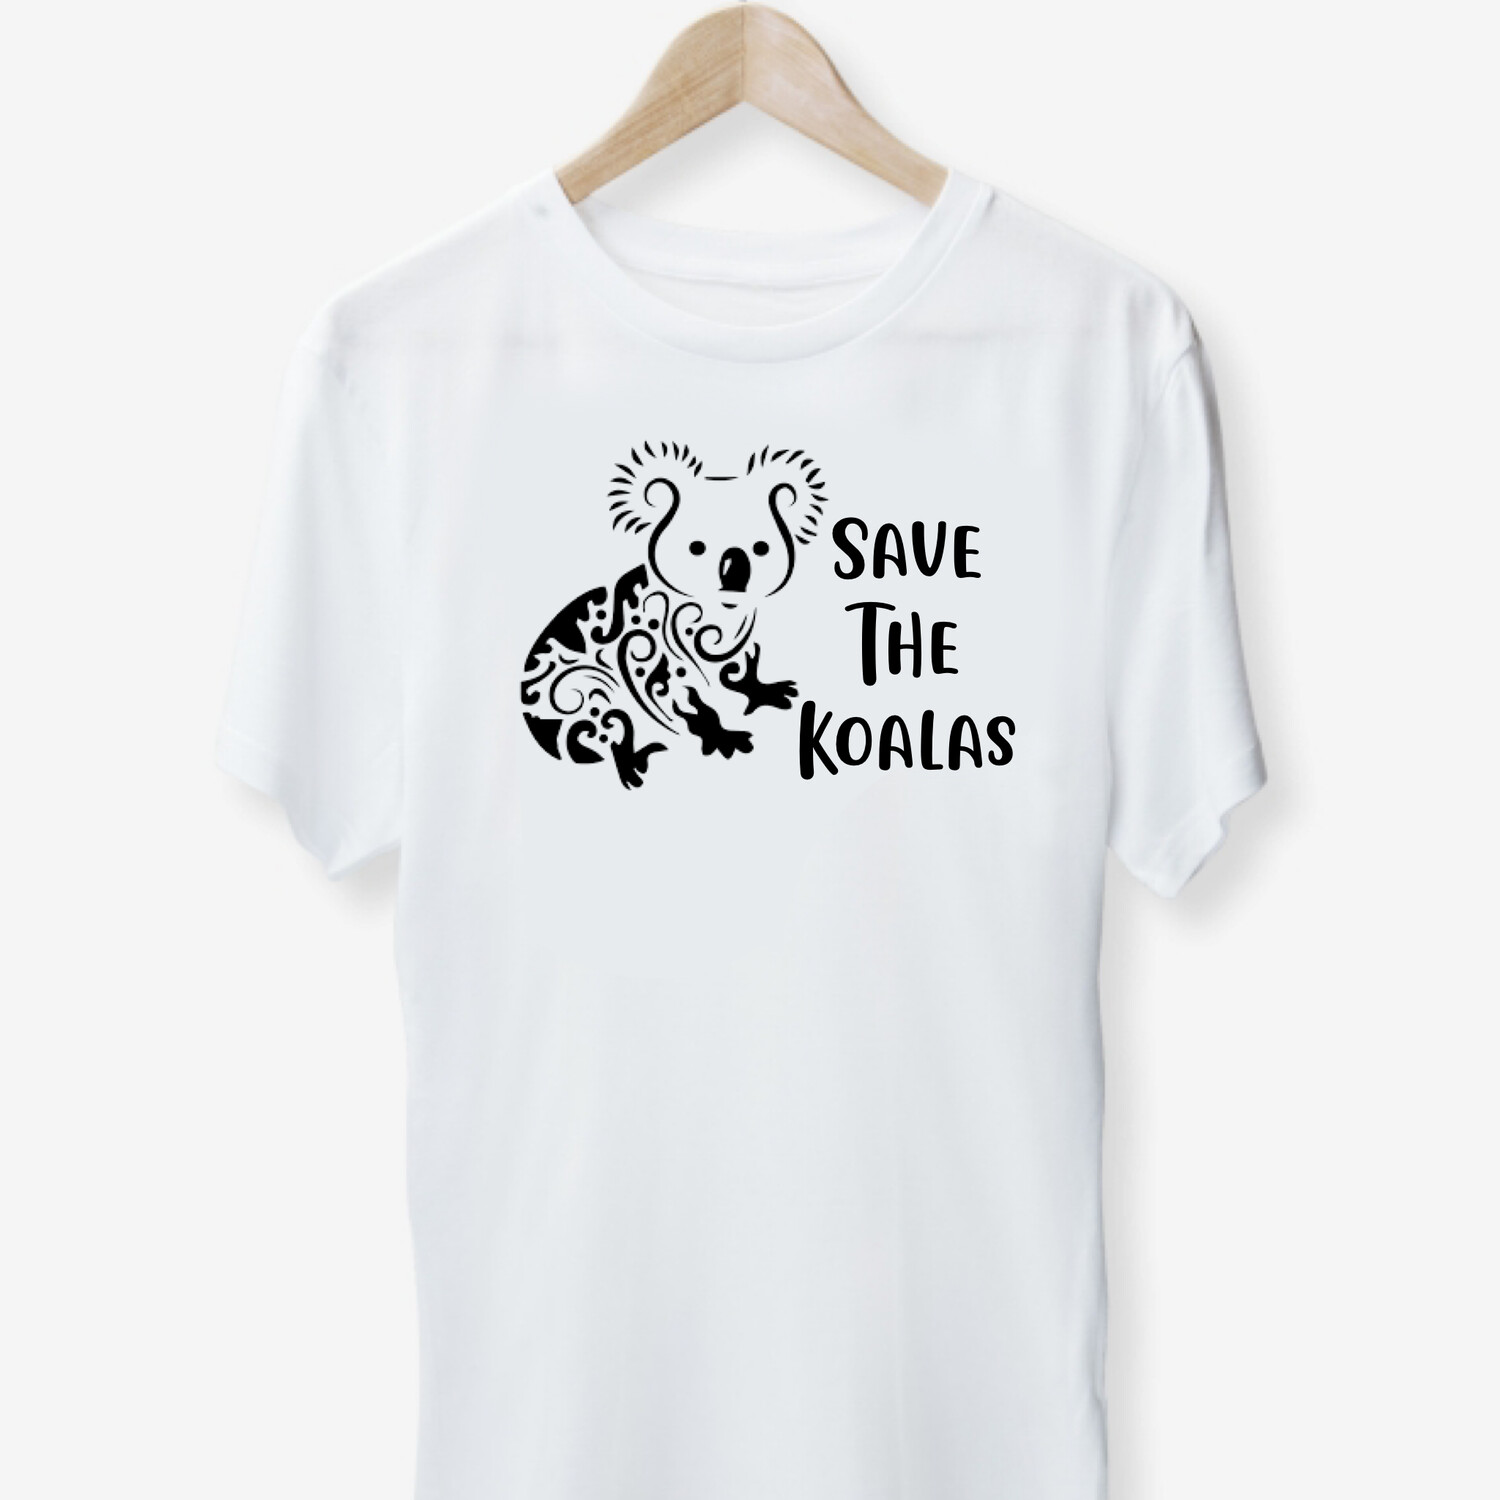 Save The Koalas Charity Tee